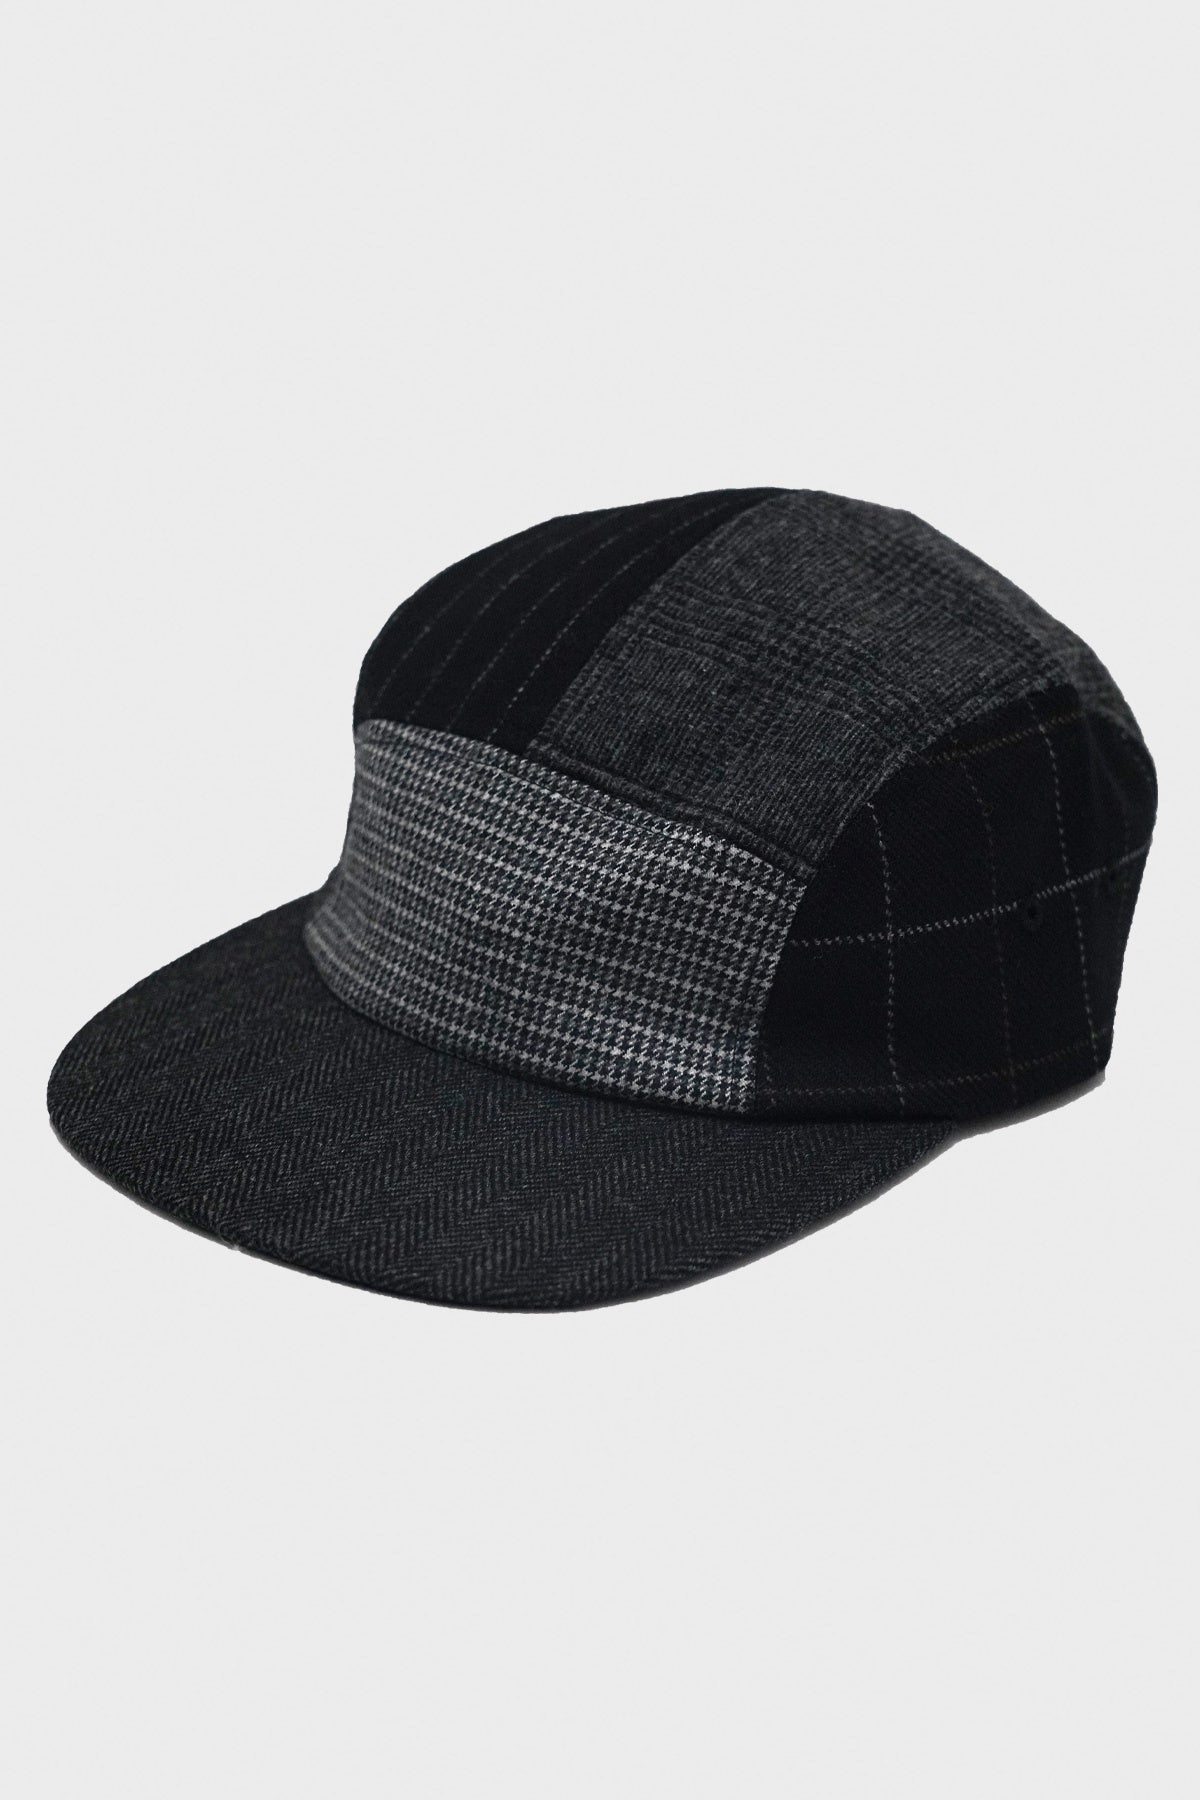 Beams Plus - 5 Panel Multi Pattern Cap - Black - Canoe Club